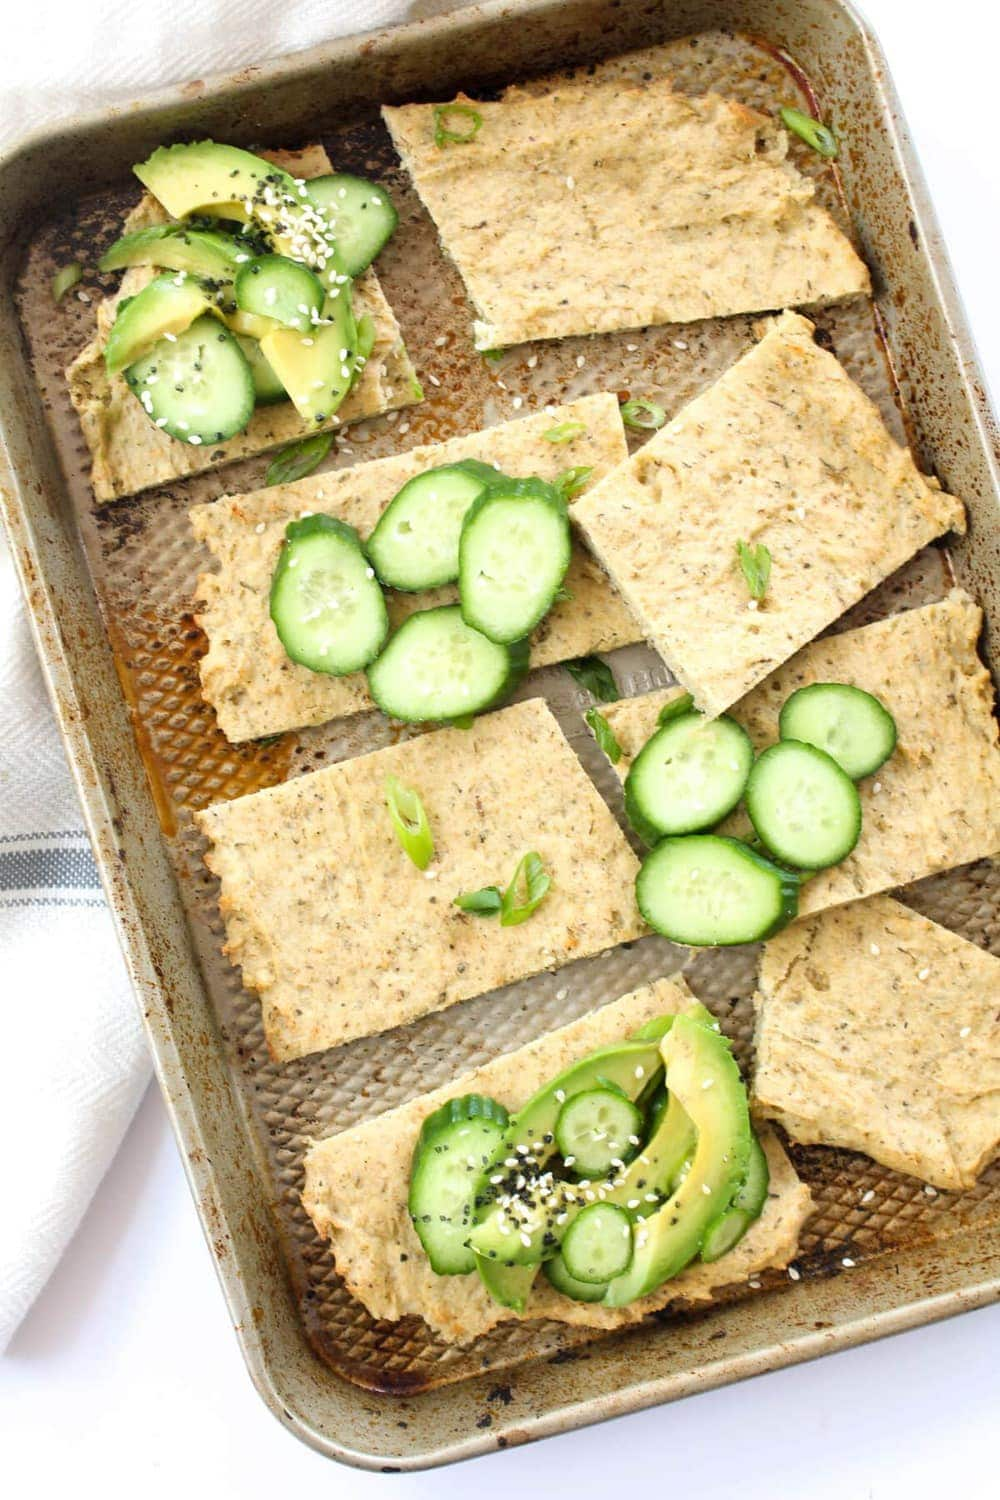 A healthy grain free flatbread recipe that is quick and easy. Yeast-free, dairy-free, & egg-free!